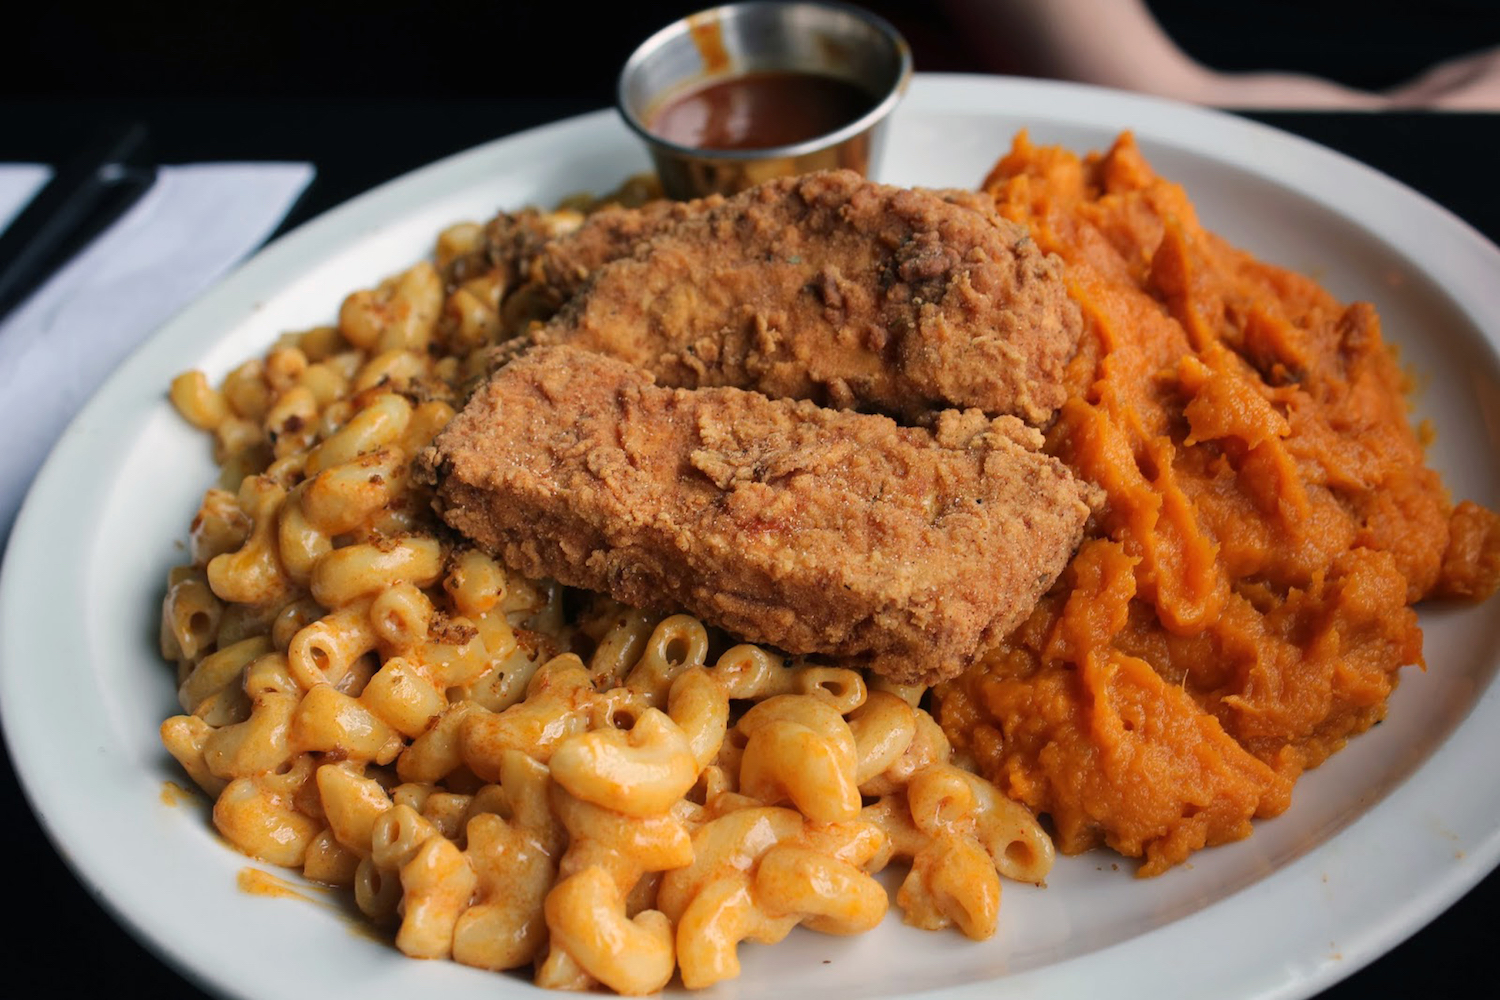 Guide: 6 of the best spots to get comfort food in Toronto